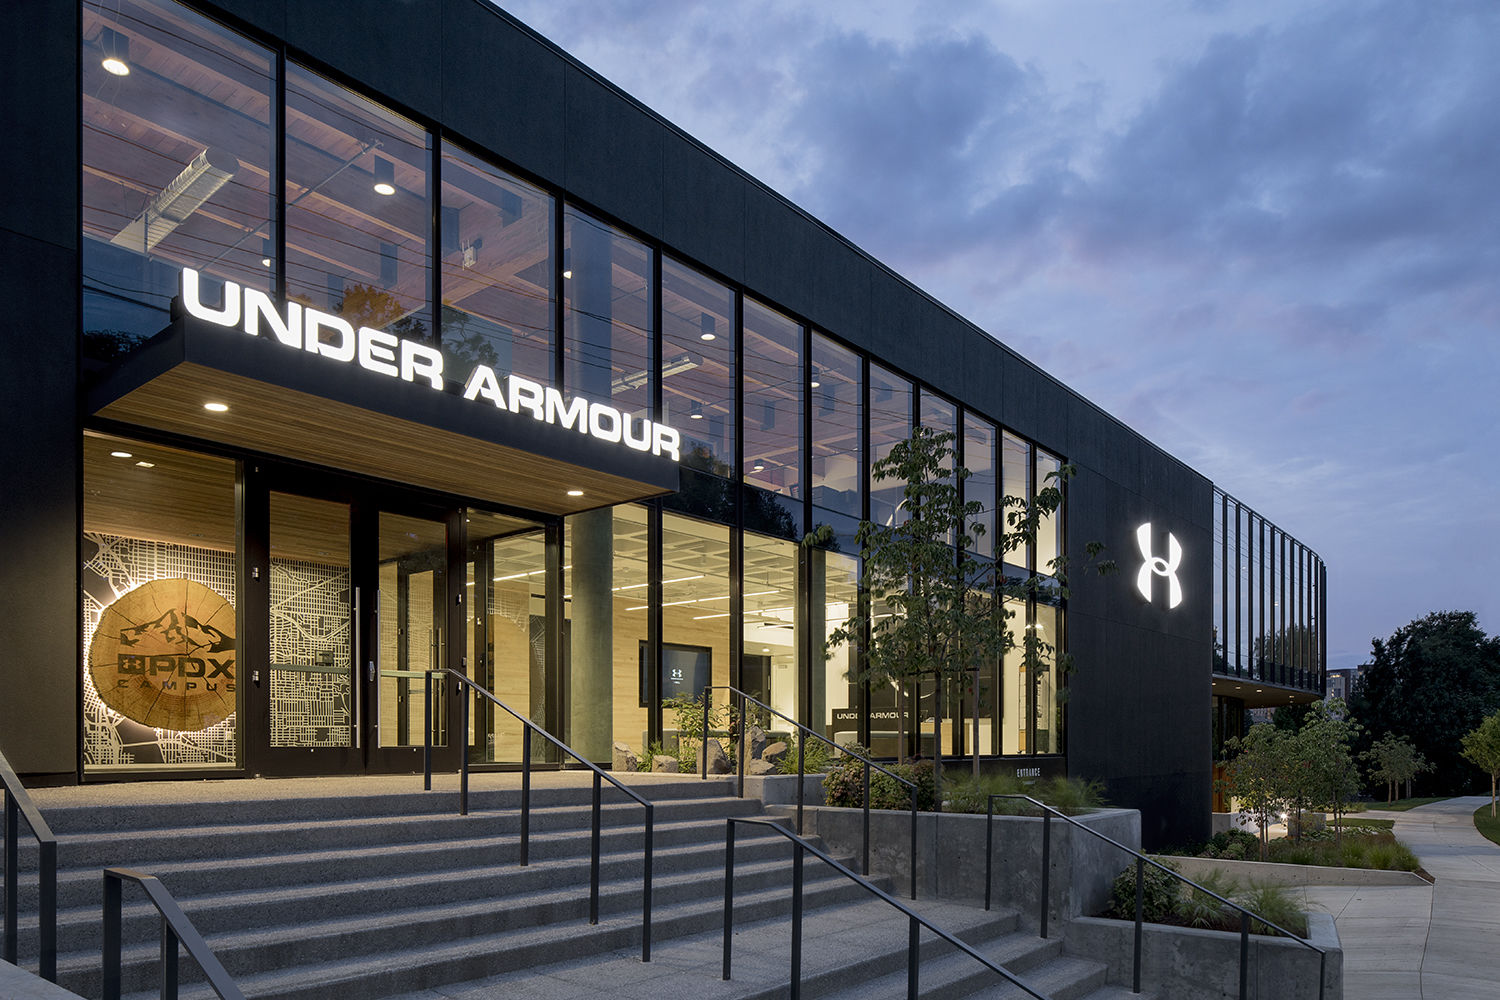 Under armour portland hq   amanda kim   4 pwa8gc